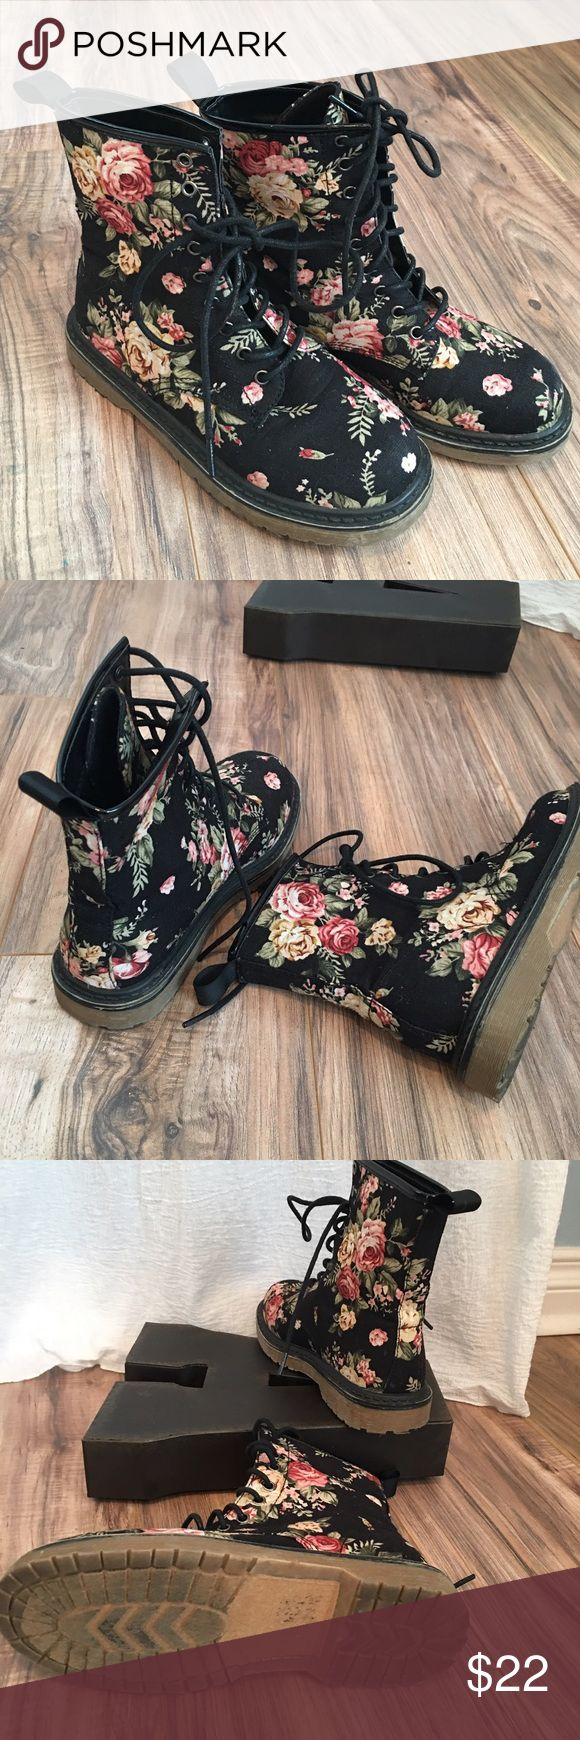 Floral Lace-up Boots Adorable black lace up boots. Worn a few times. Size 5 Tilly's Shoes Lace Up Boots